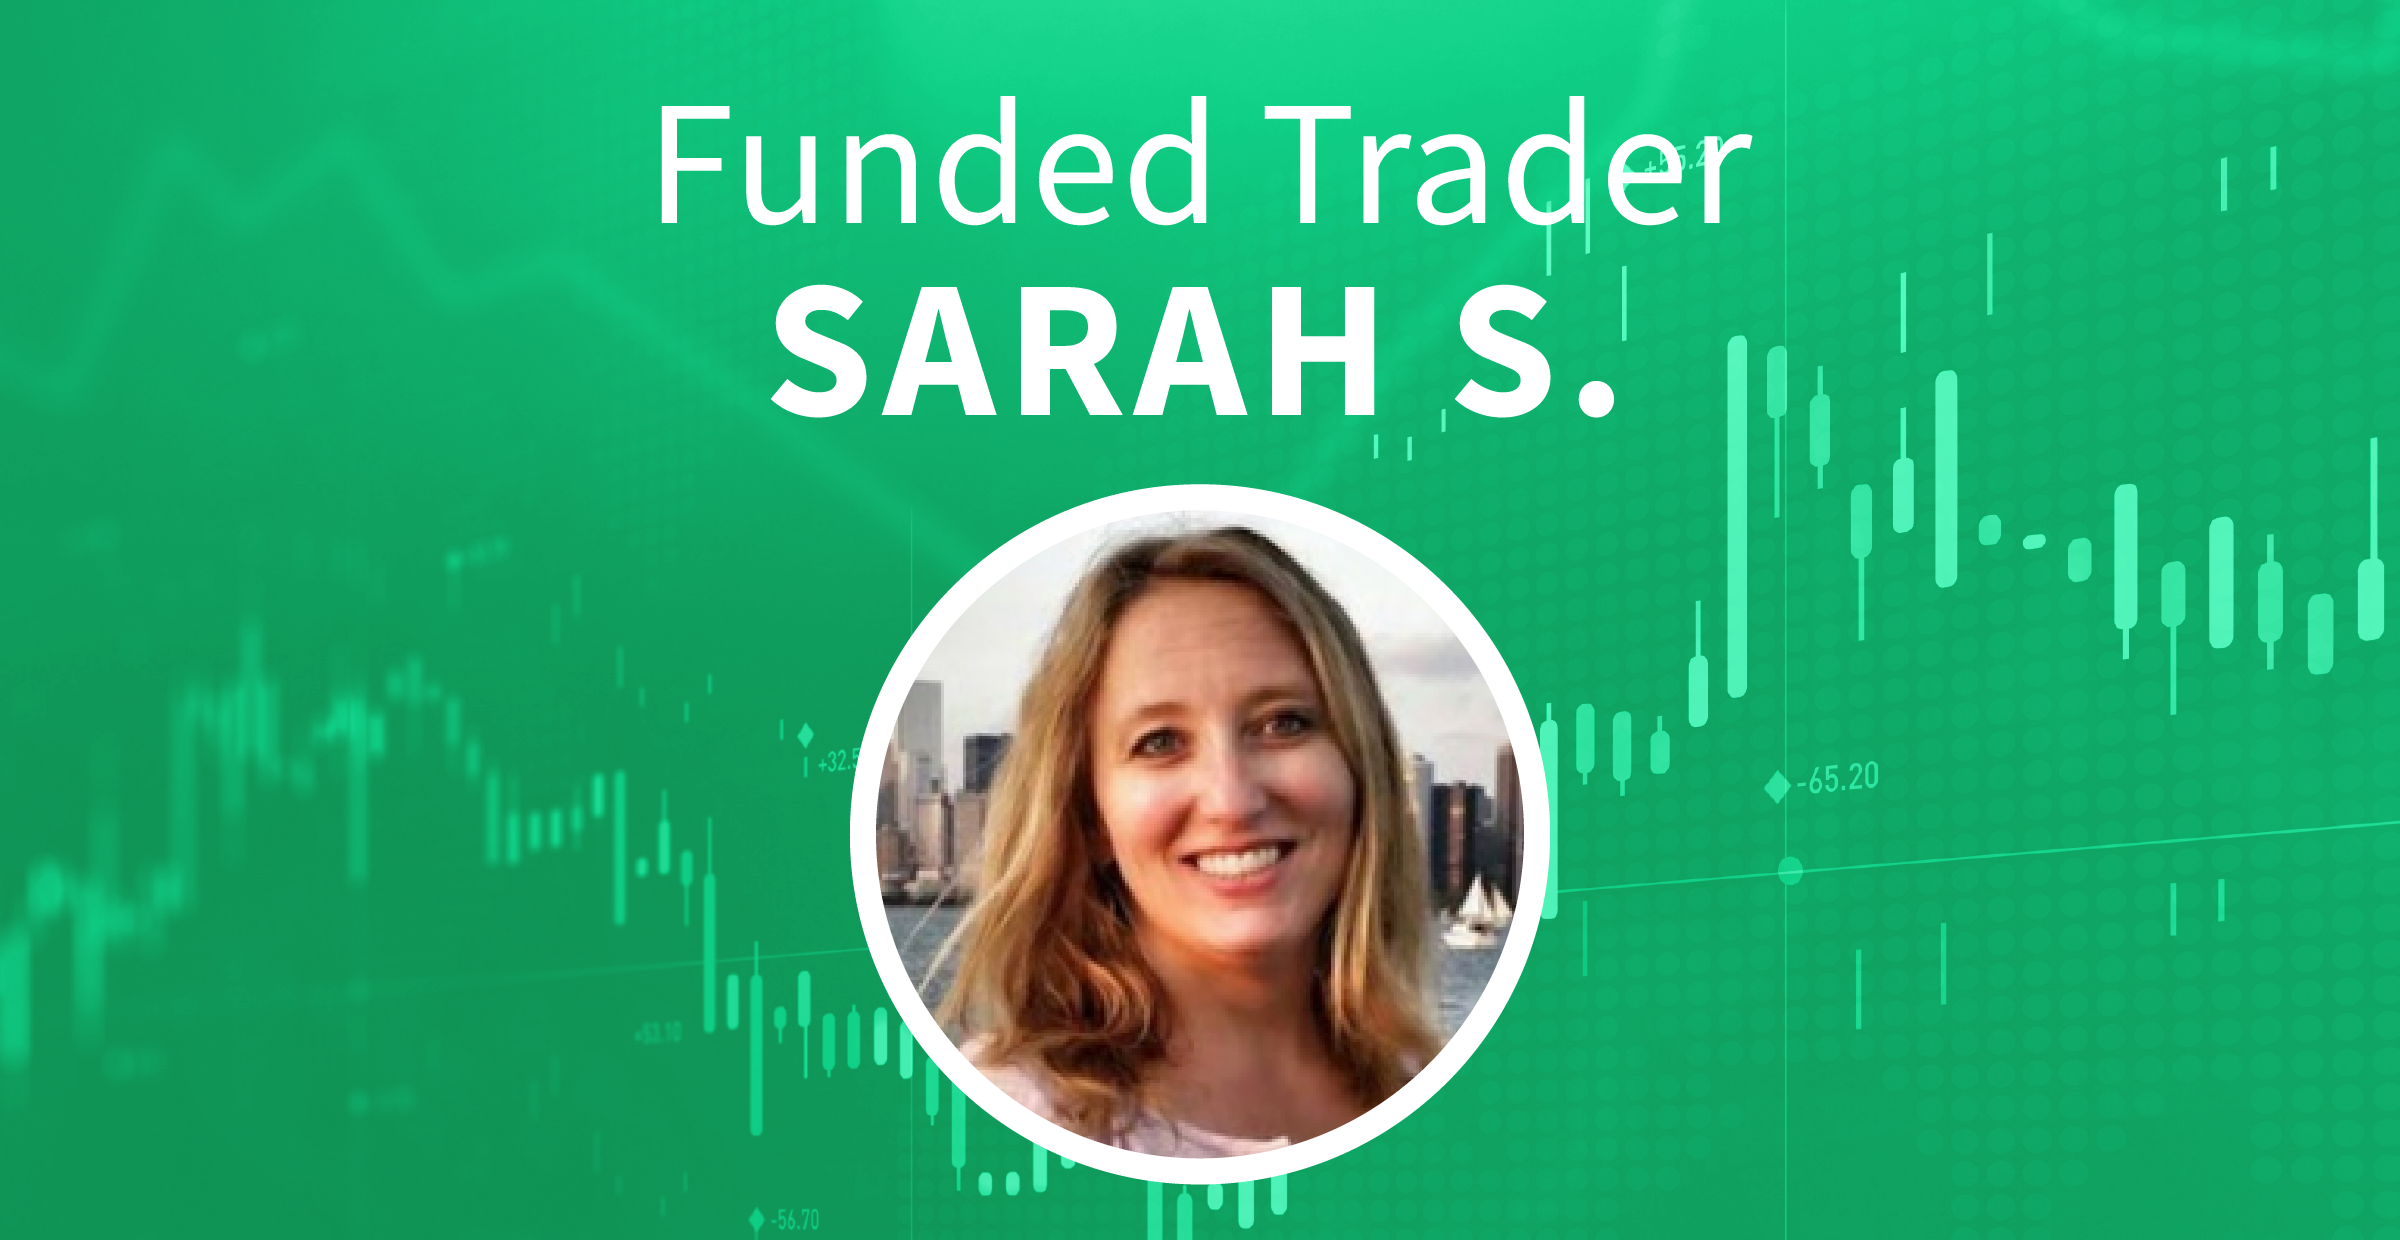 Funded Trader Sarah S.